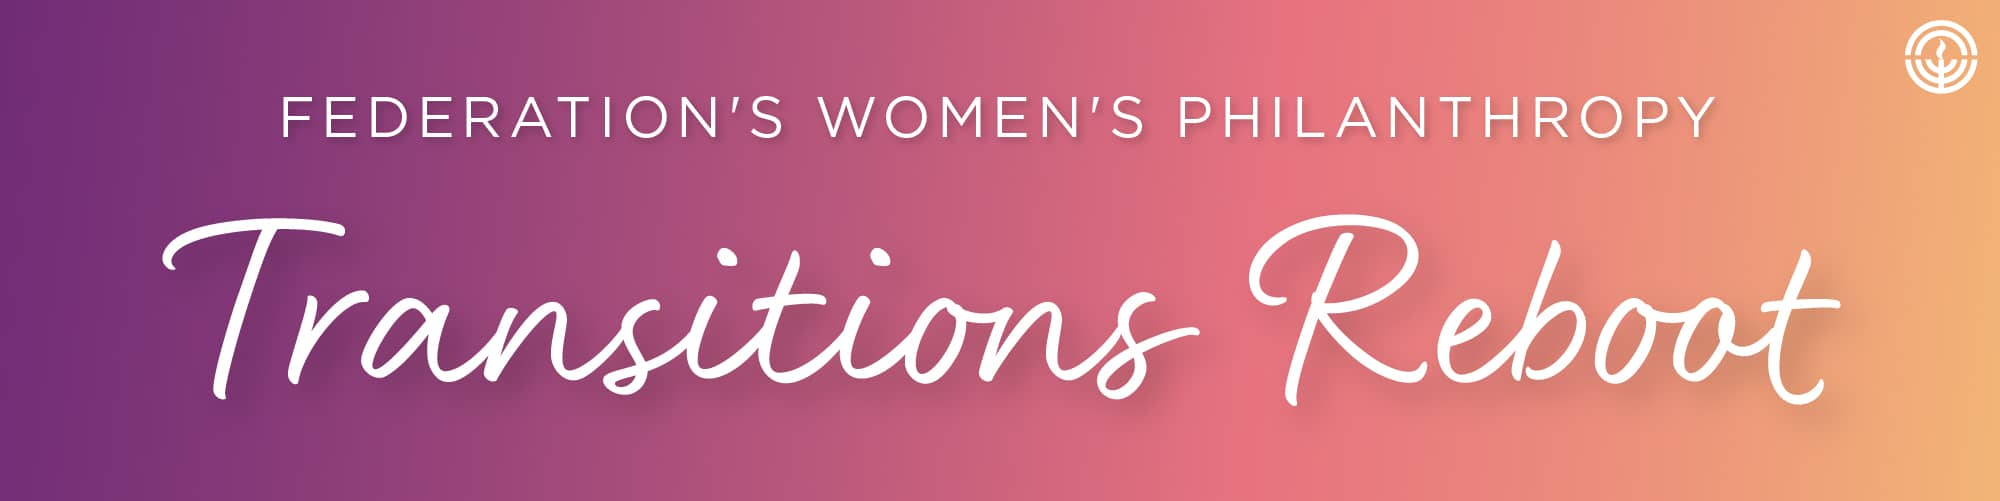 Banner Reads: Federation's Women's Philanthropy Transitions Reboot